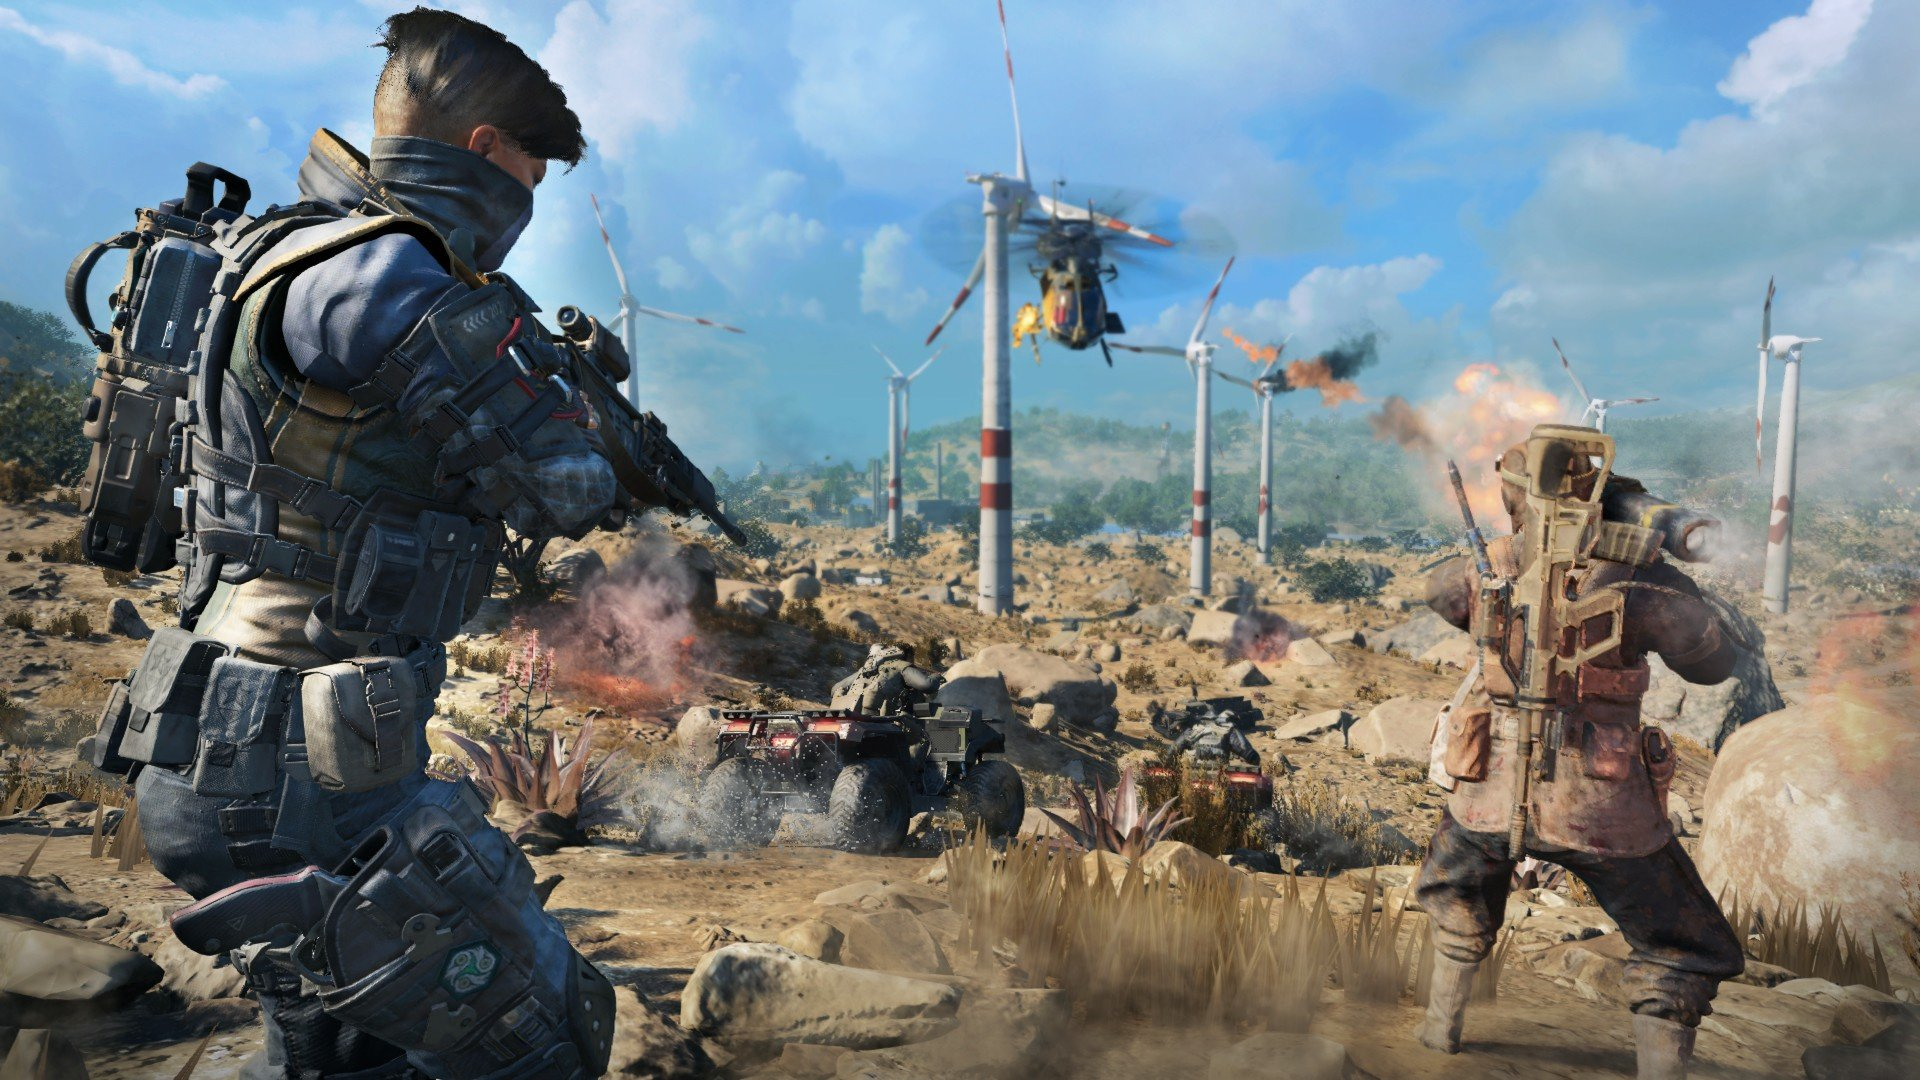 Call of Duty: Black Ops 4 - Hints and Tips for Surviving